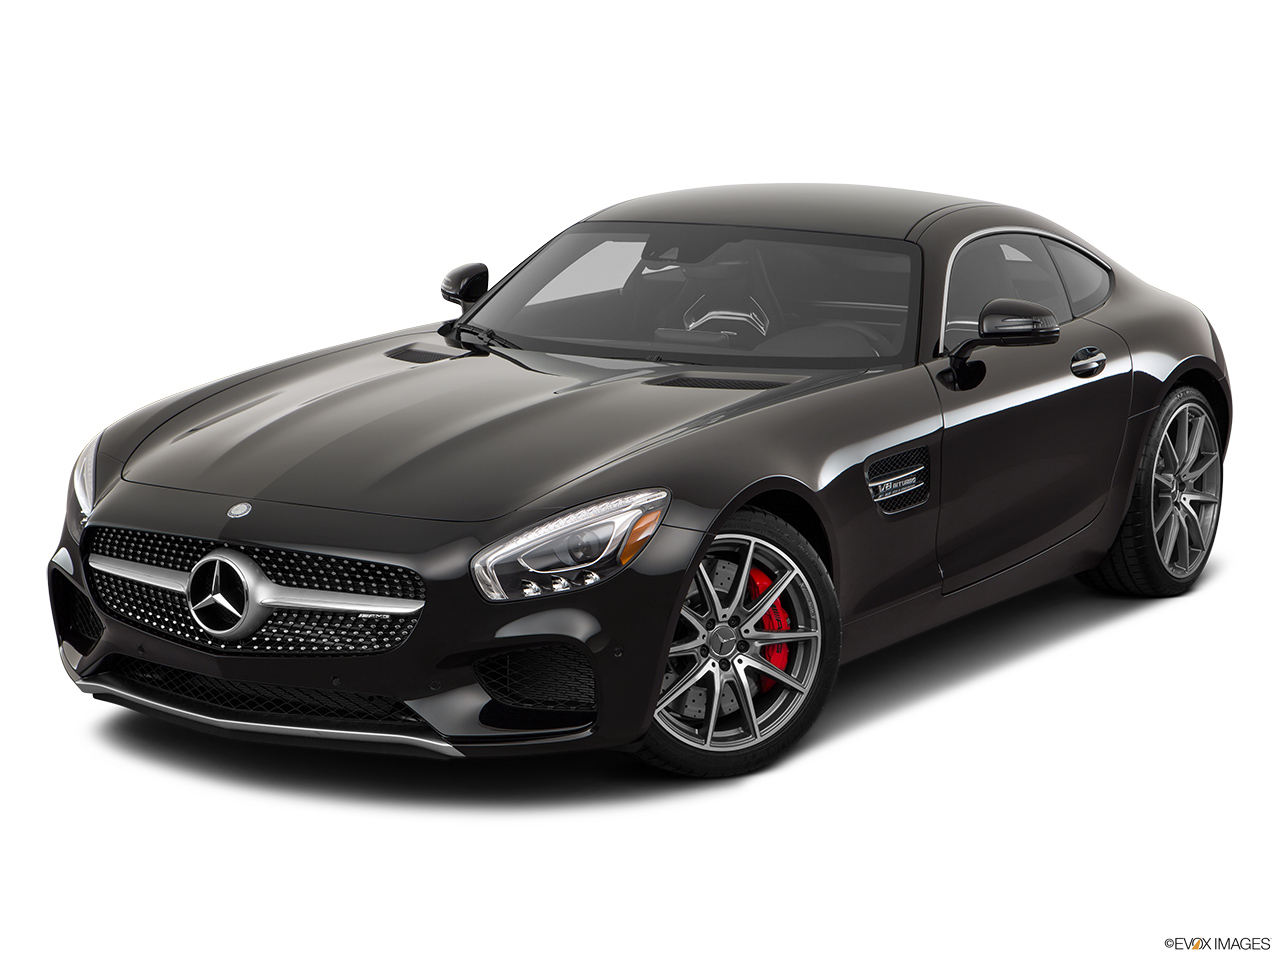 benz mercedes amg gt 0l مرسيدس version cars uae angle front جي تي yallamotor ymimg1 b8cdn st1280 emirates